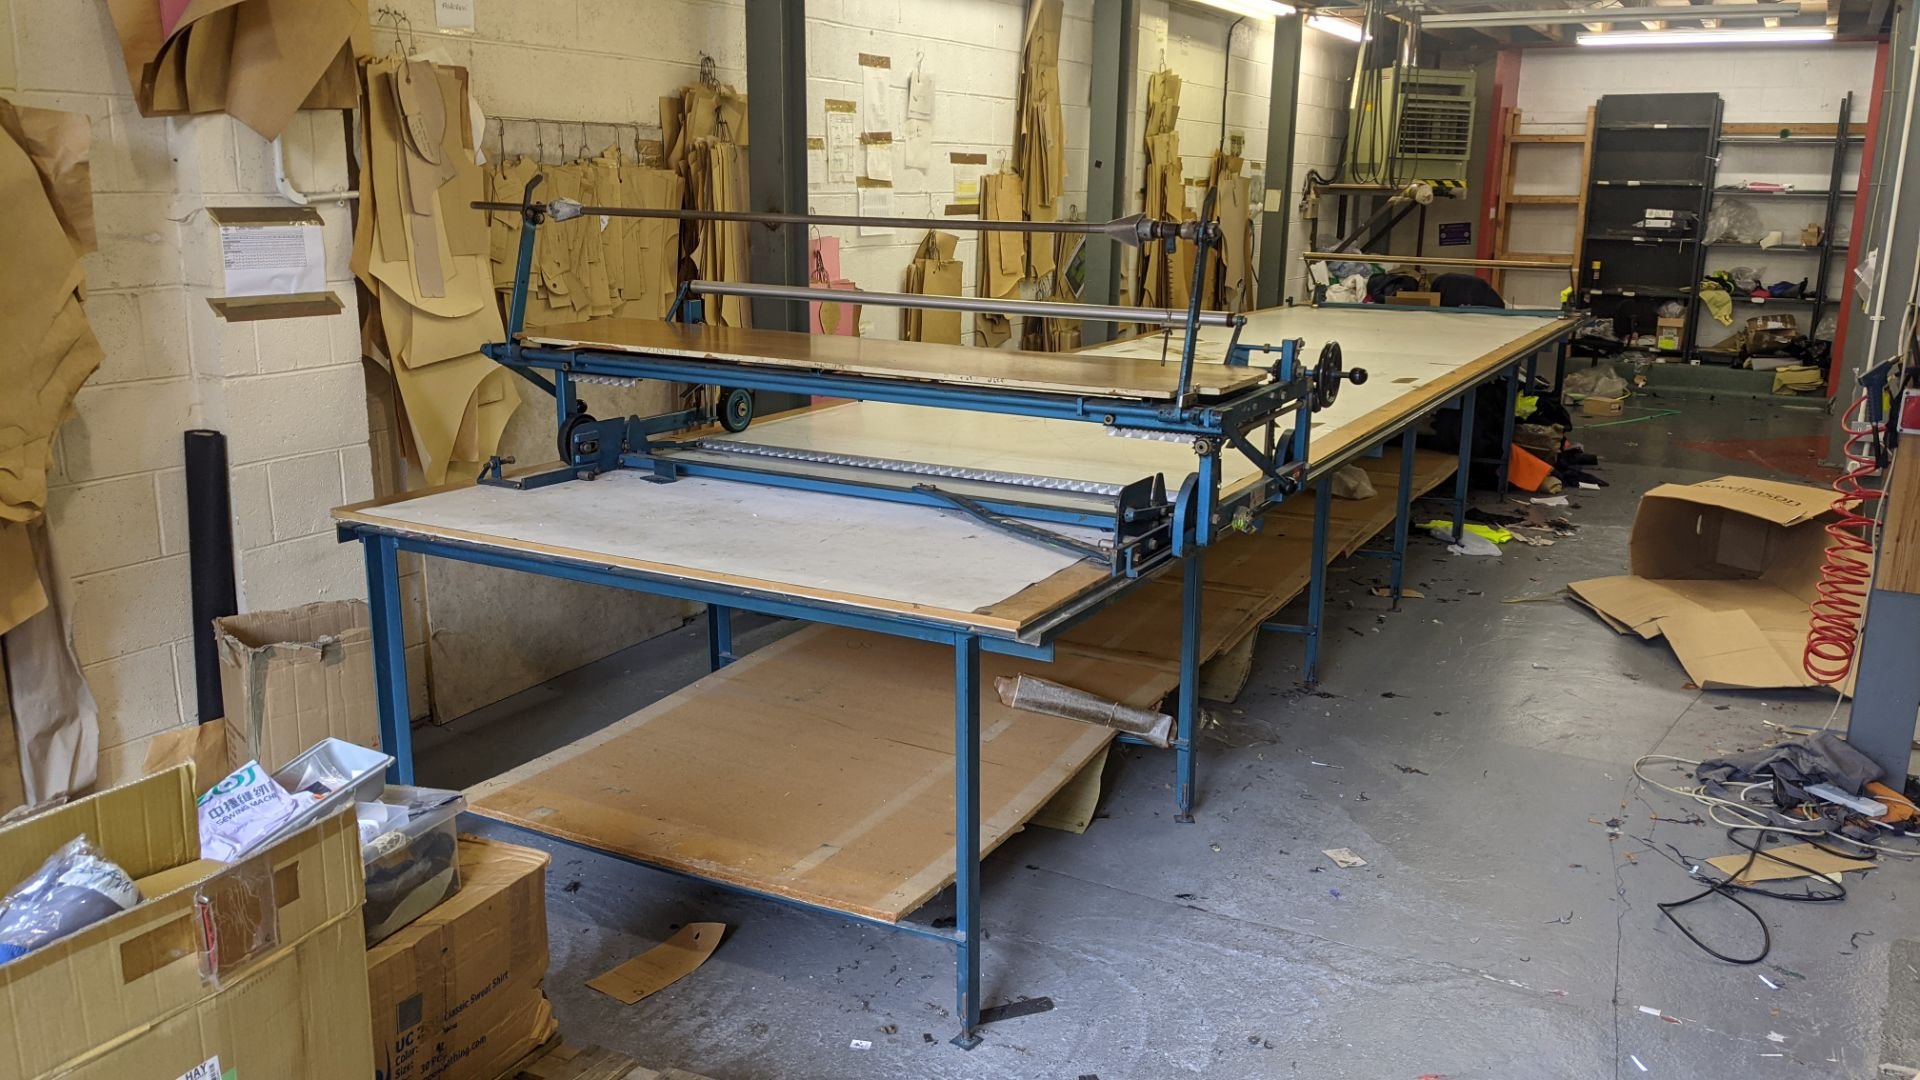 Large cutting table, as shown in 3 stacks. Please note photos taken in situ before the table was de - Image 2 of 16